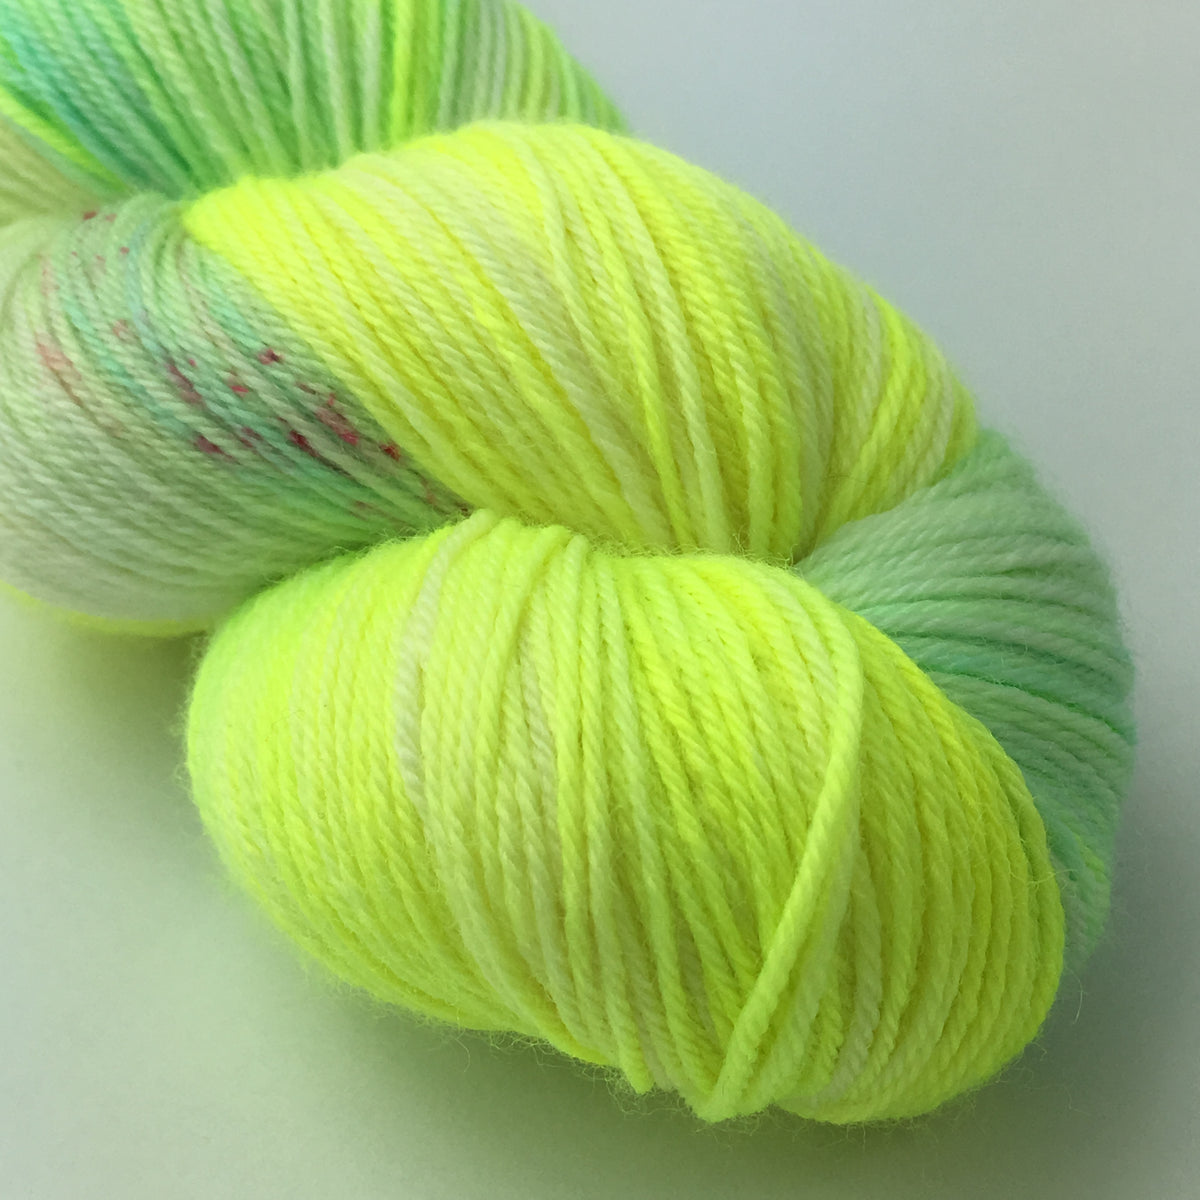 LJP Merino Sock:Lemon Jelly Pool